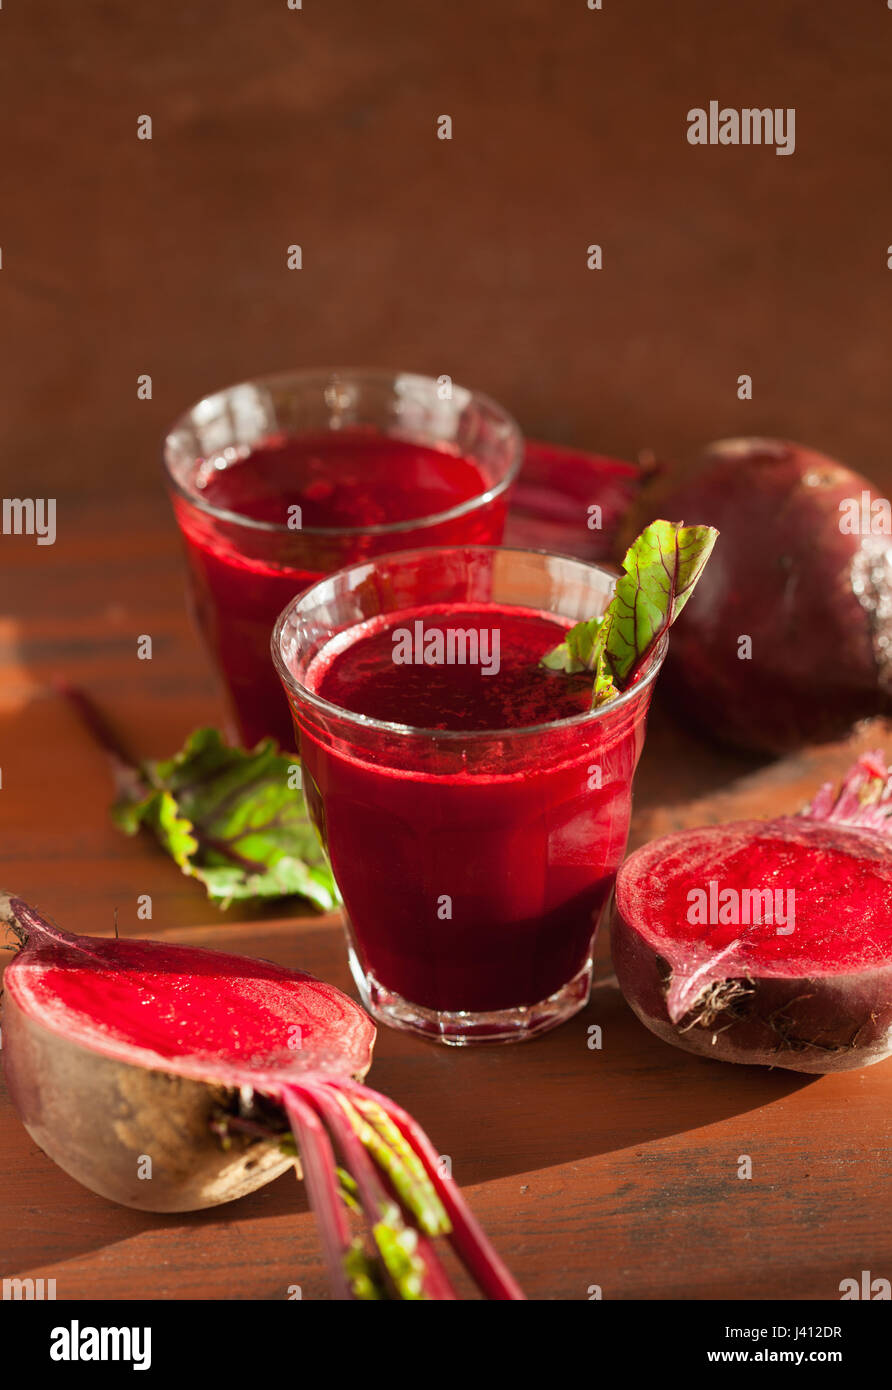 fresh healthy beetroot juice and vegetable - Stock Image